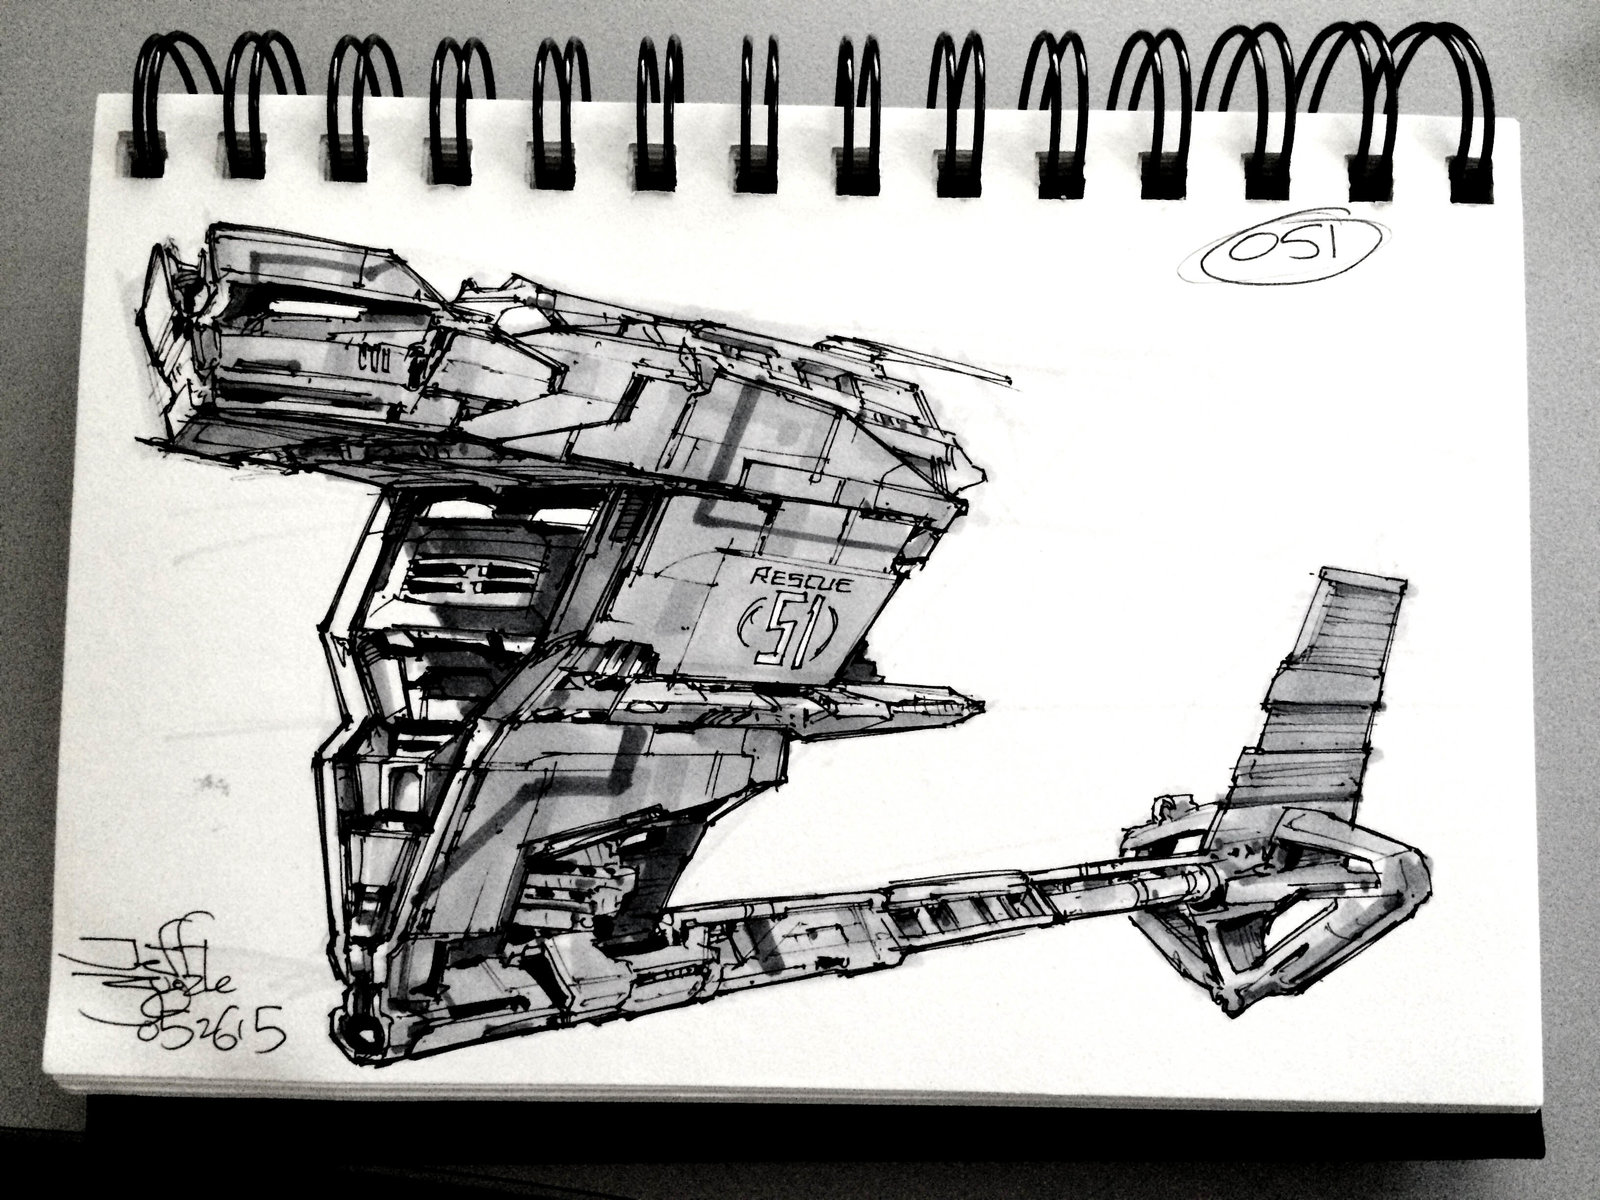 SpaceshipADay 051